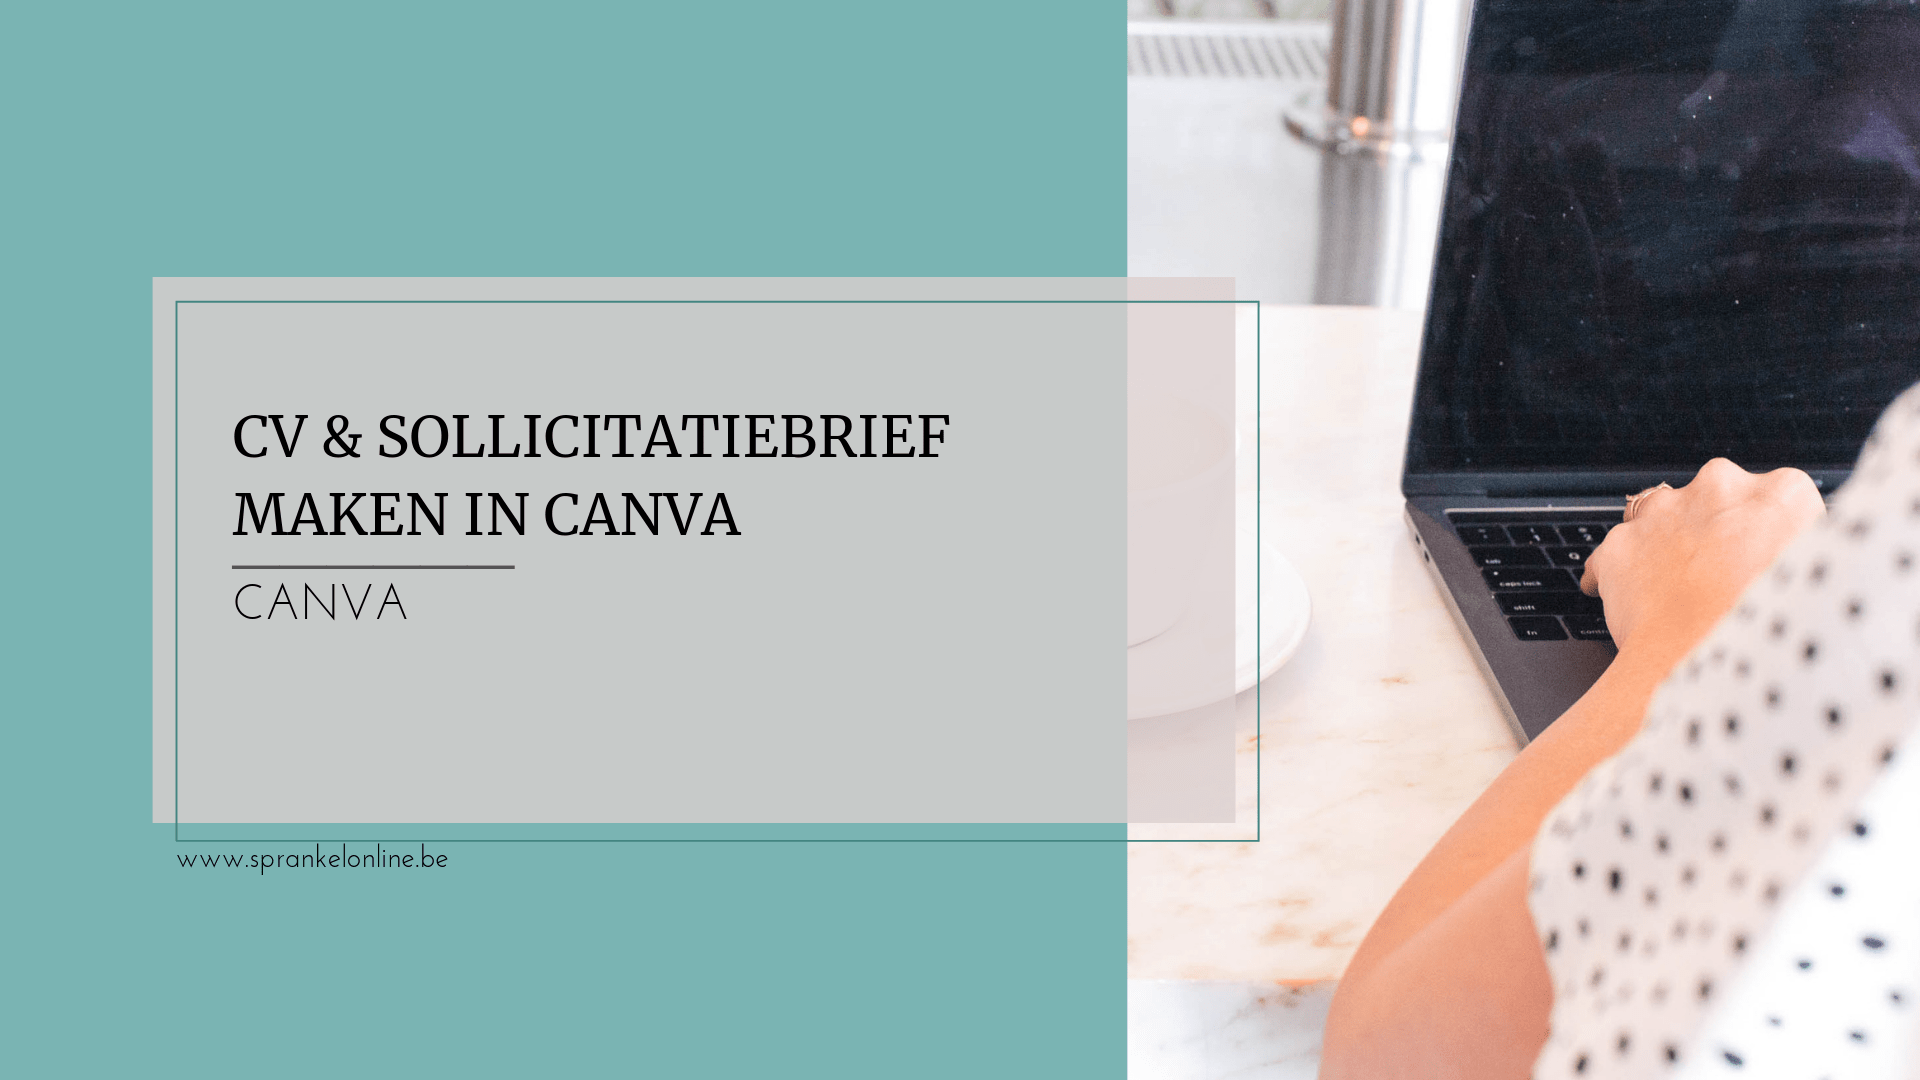 CV maken in Canva